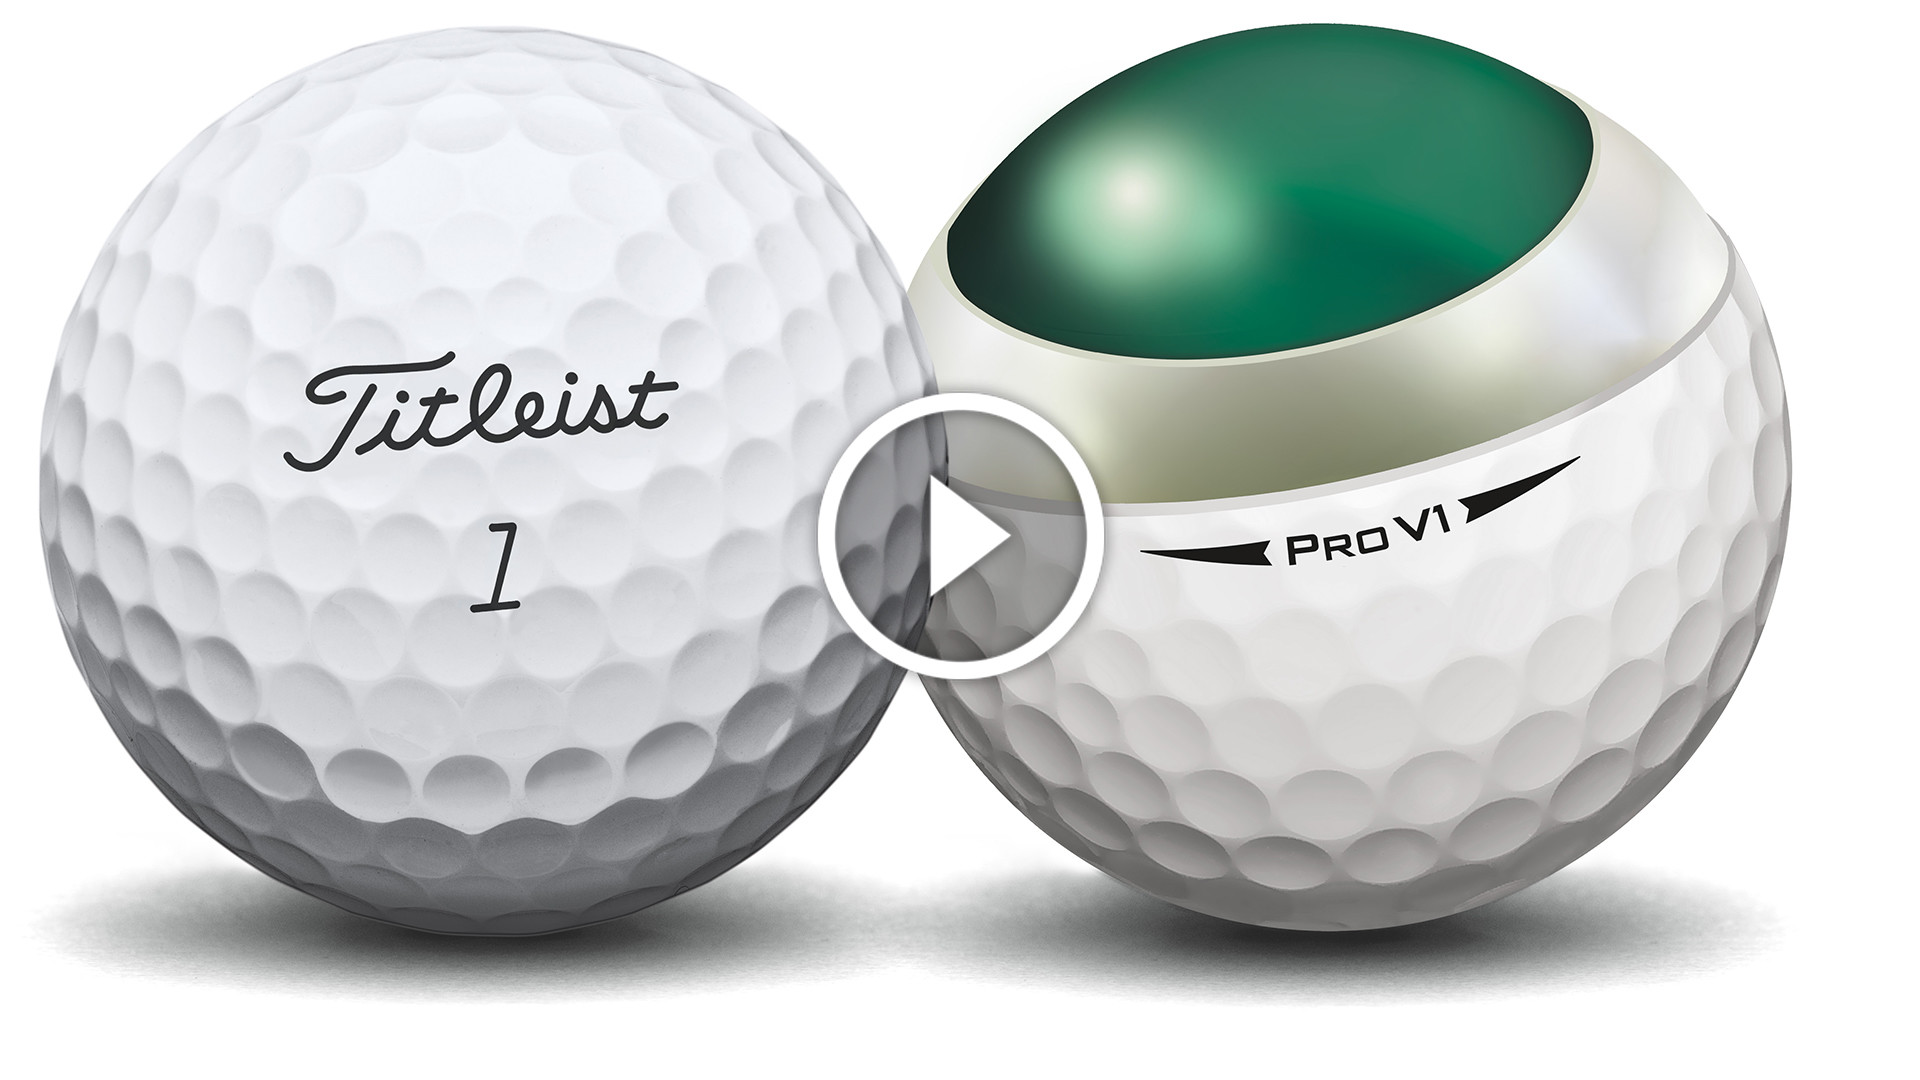 Res: 1920x1080, VIDEO: Inside the new Titleist Pro V1 and Pro V1x balls - Golf Australia  Magazine